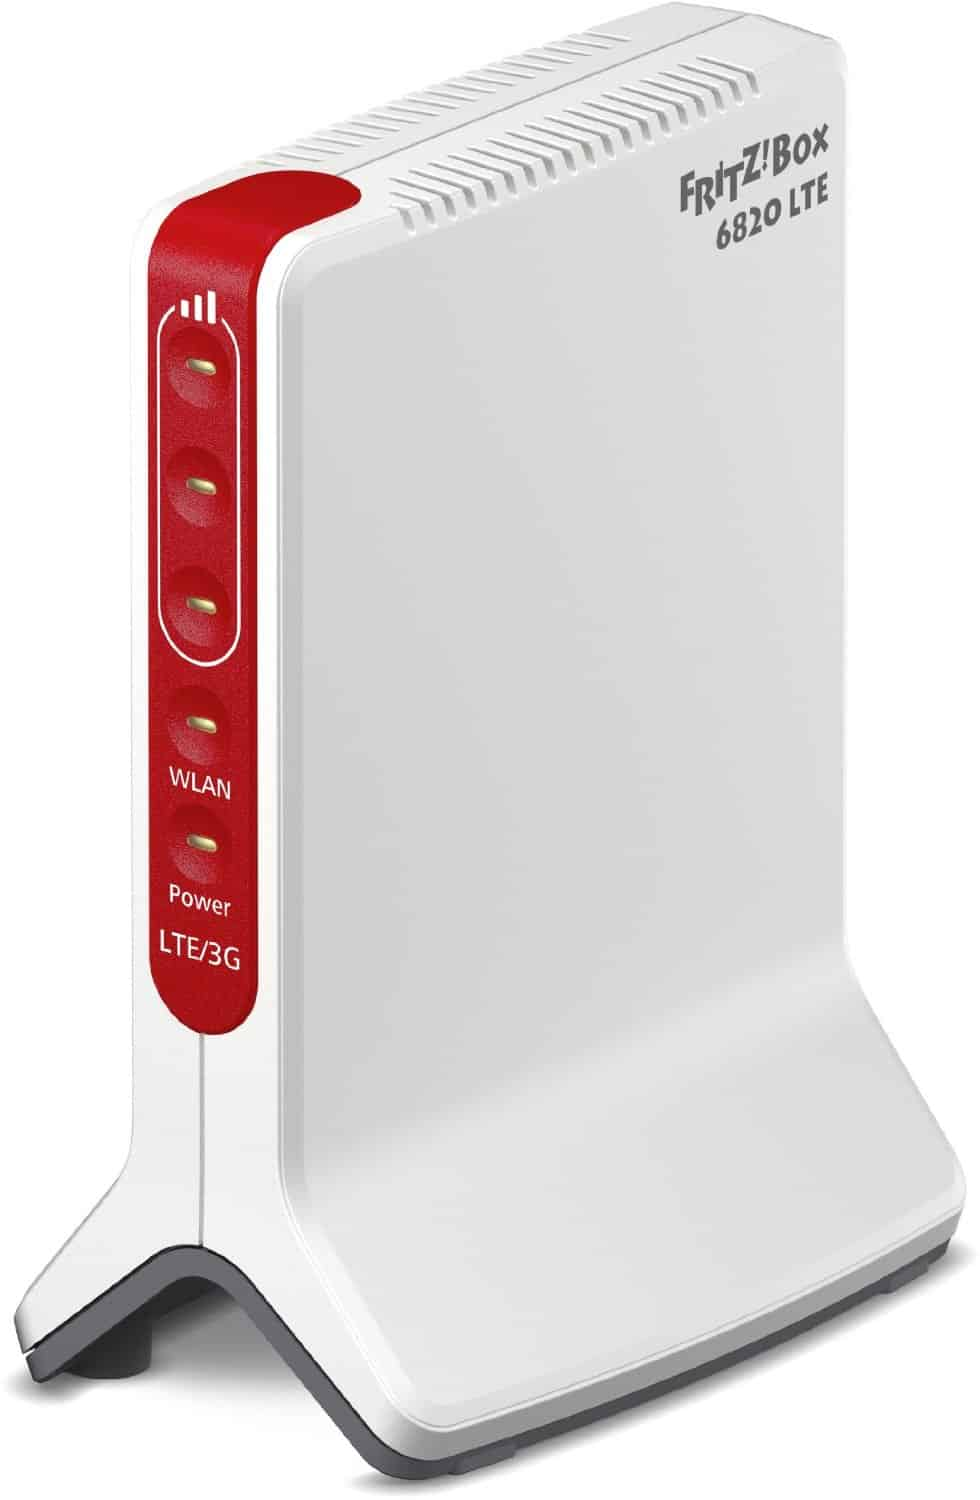 FRITZ!Box 6820 LTE Router Review